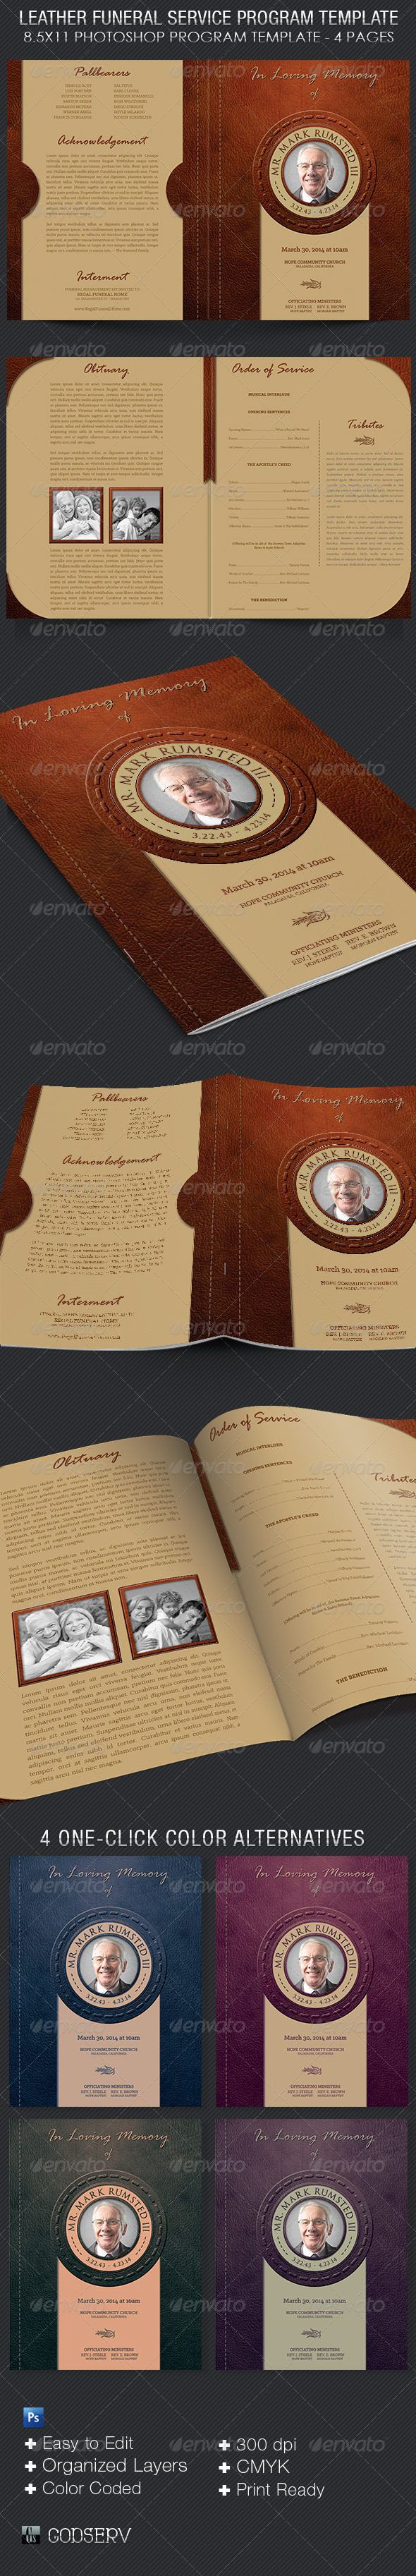 Leather Funeral Program Template - 4 Pages - Informational Brochures